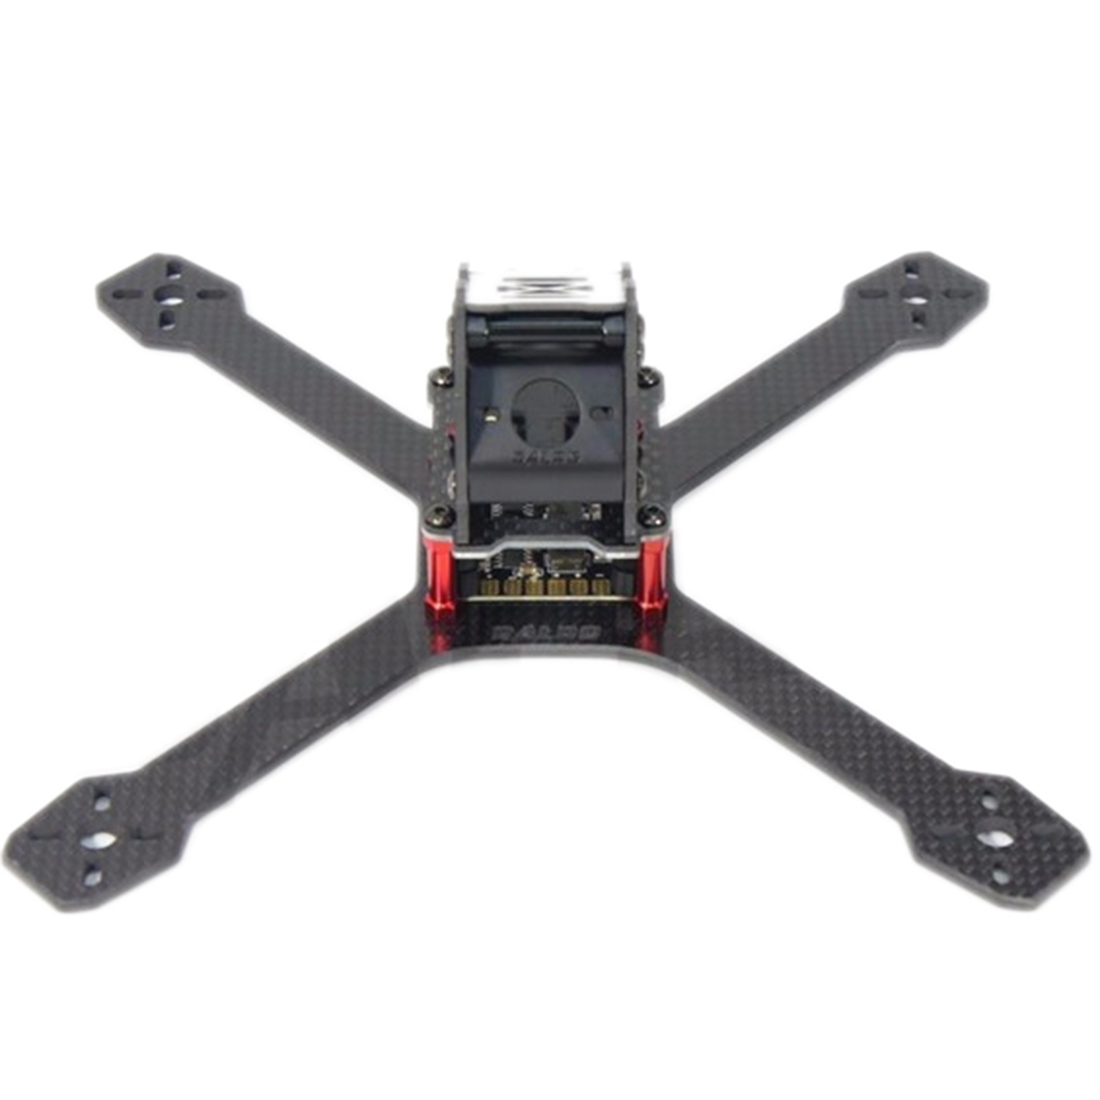 HOBBYINRC DIY FPV DALRC XR220 Carbon Fiber Drone Quadcopter Frame Kit with 5V 12V 3A PDB / LED Board RC Quadcopter  Accessories diy da500 carbon fiber quadcopter frame kit x4 x8 frame set for fpv photography rc frame drone multicopter airplane